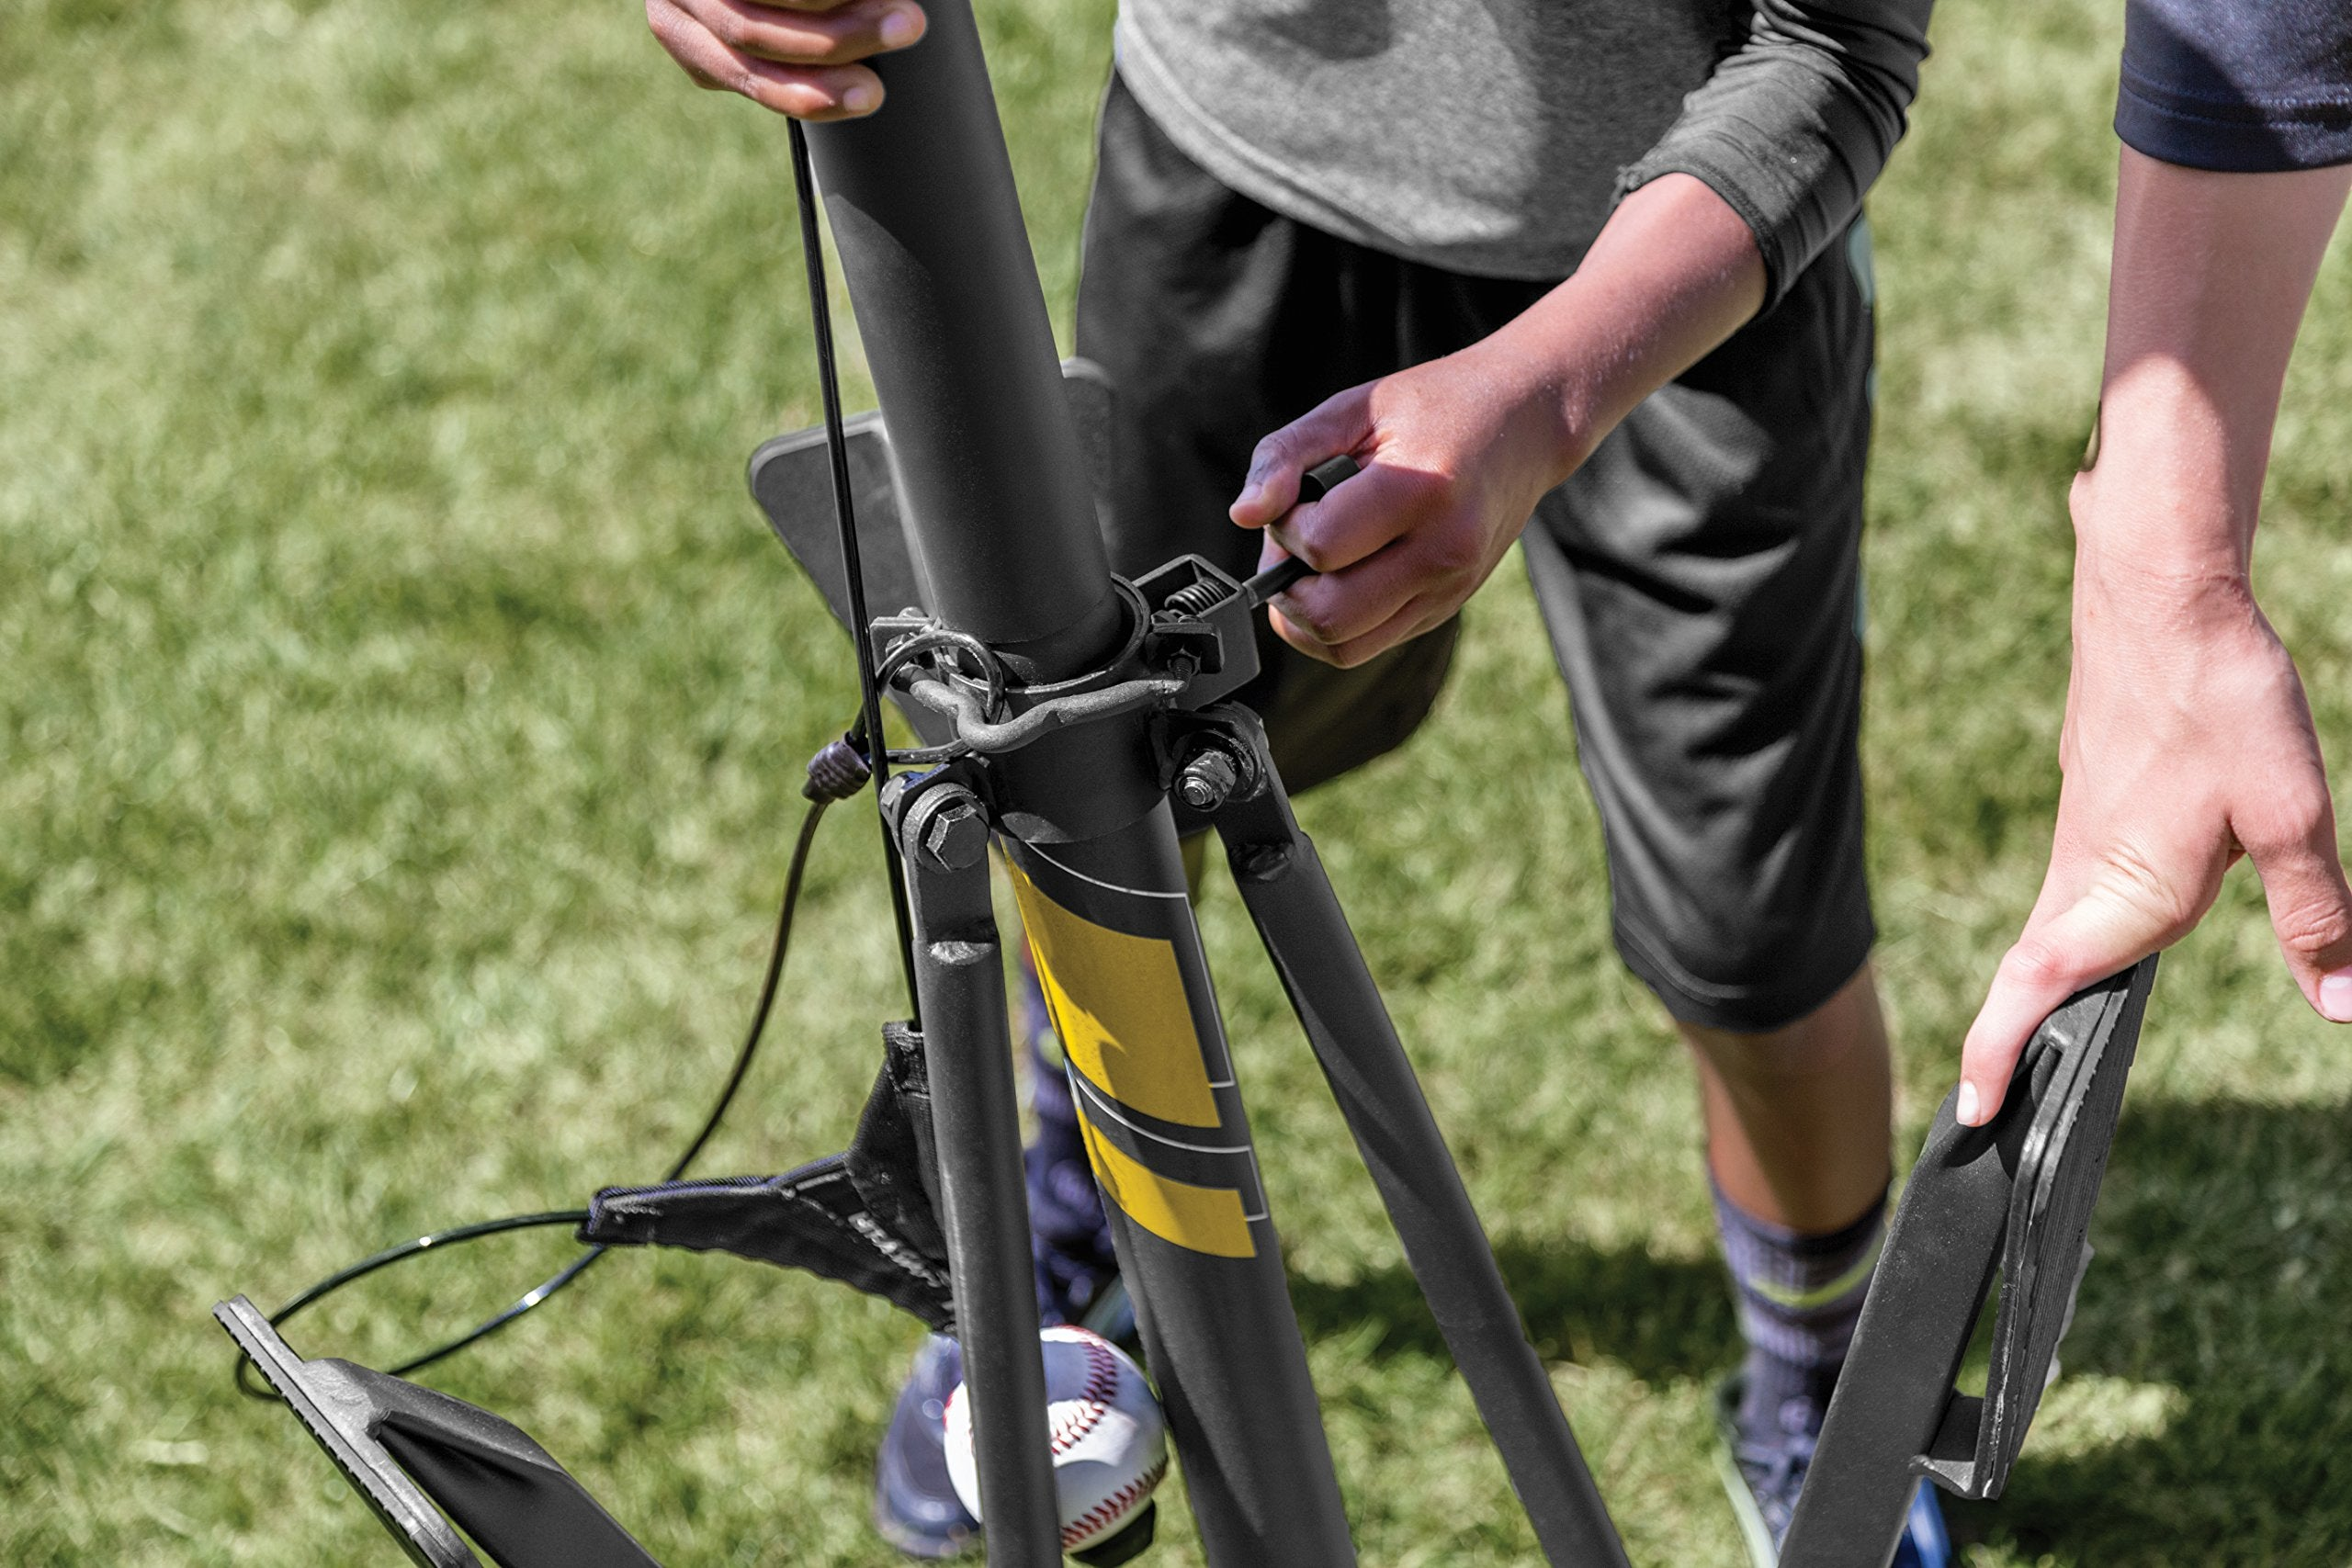 SKLZ Hit-A-Way Portable Baseball Training-Station Swing Trainer with Stand - Ctfitnesswear